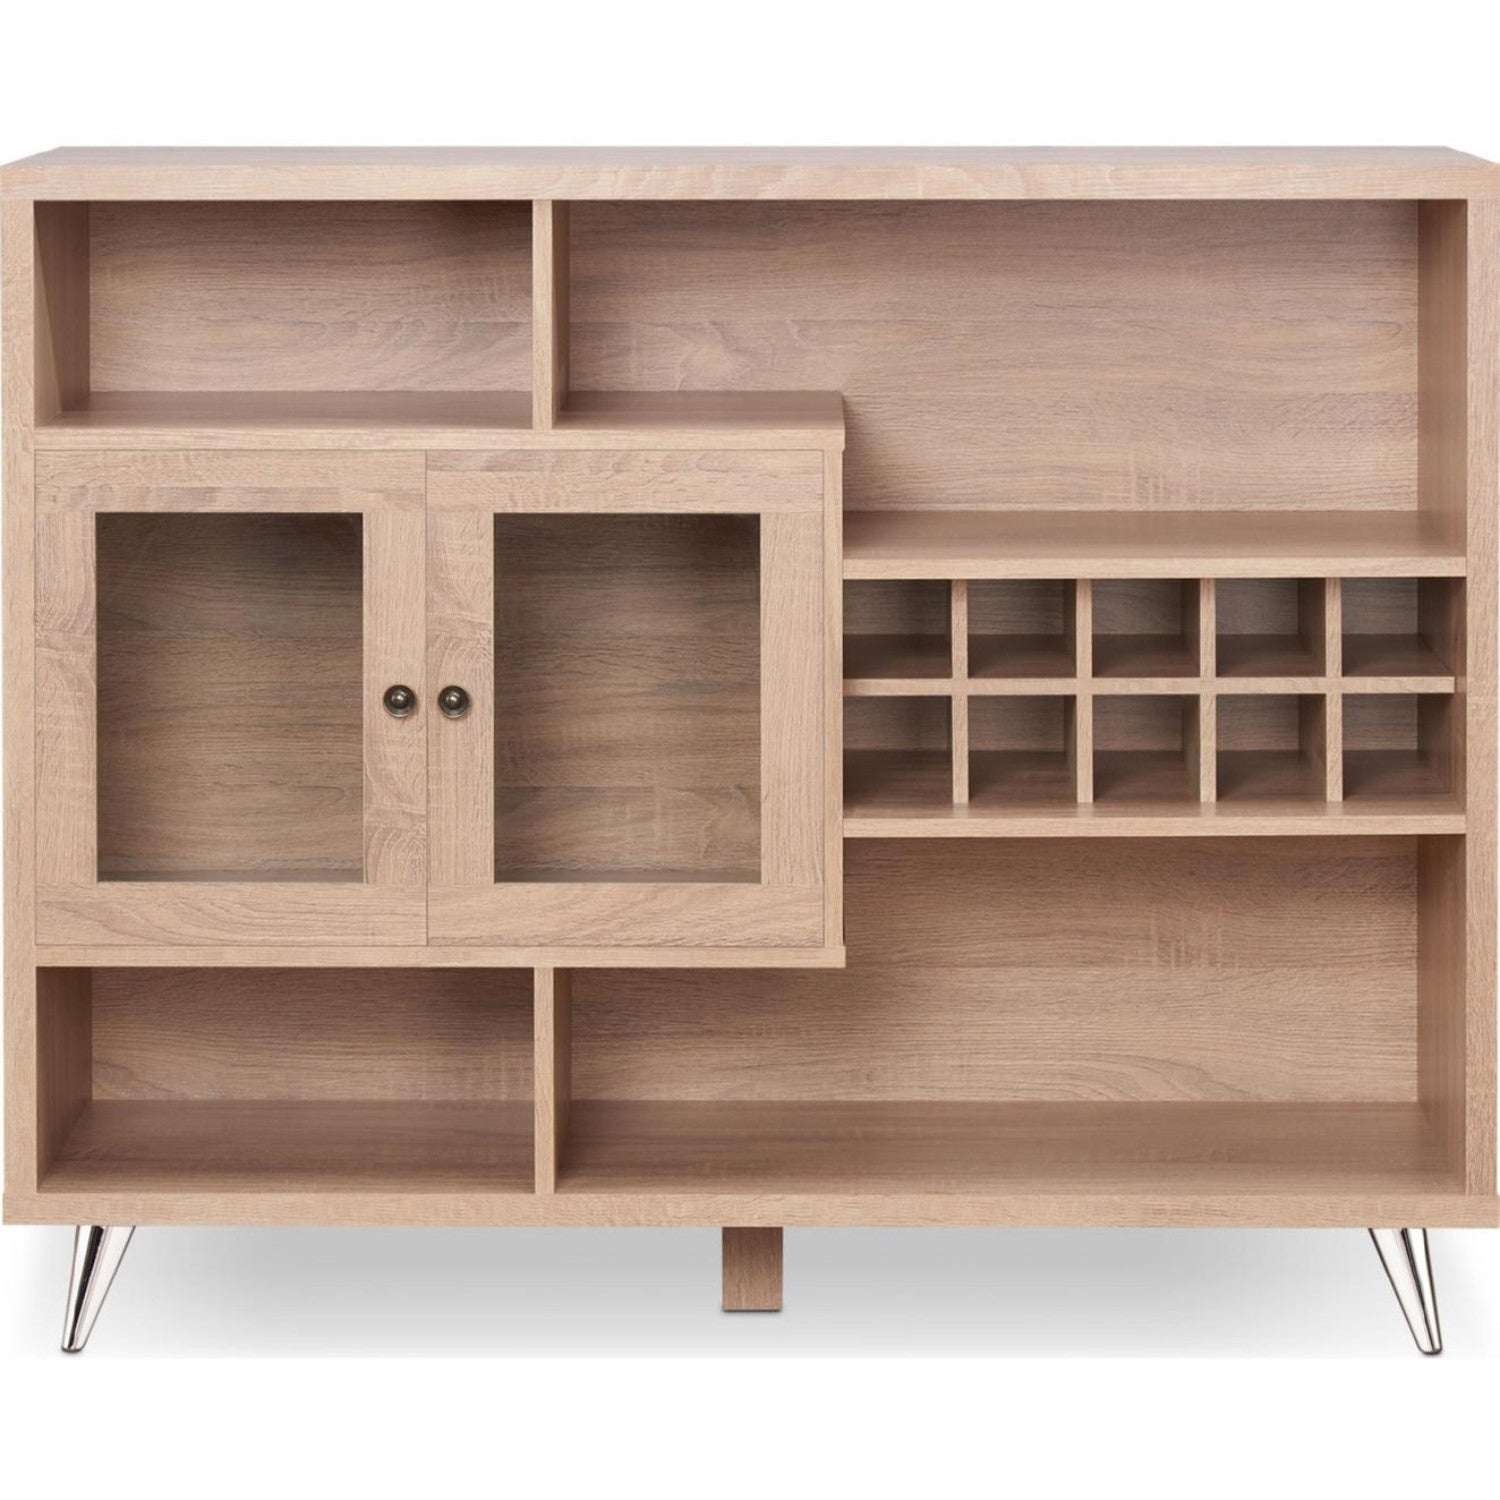 Popular Photo of Contemporary Wooden Buffets With Four Open Compartments And Metal Tapered Legs